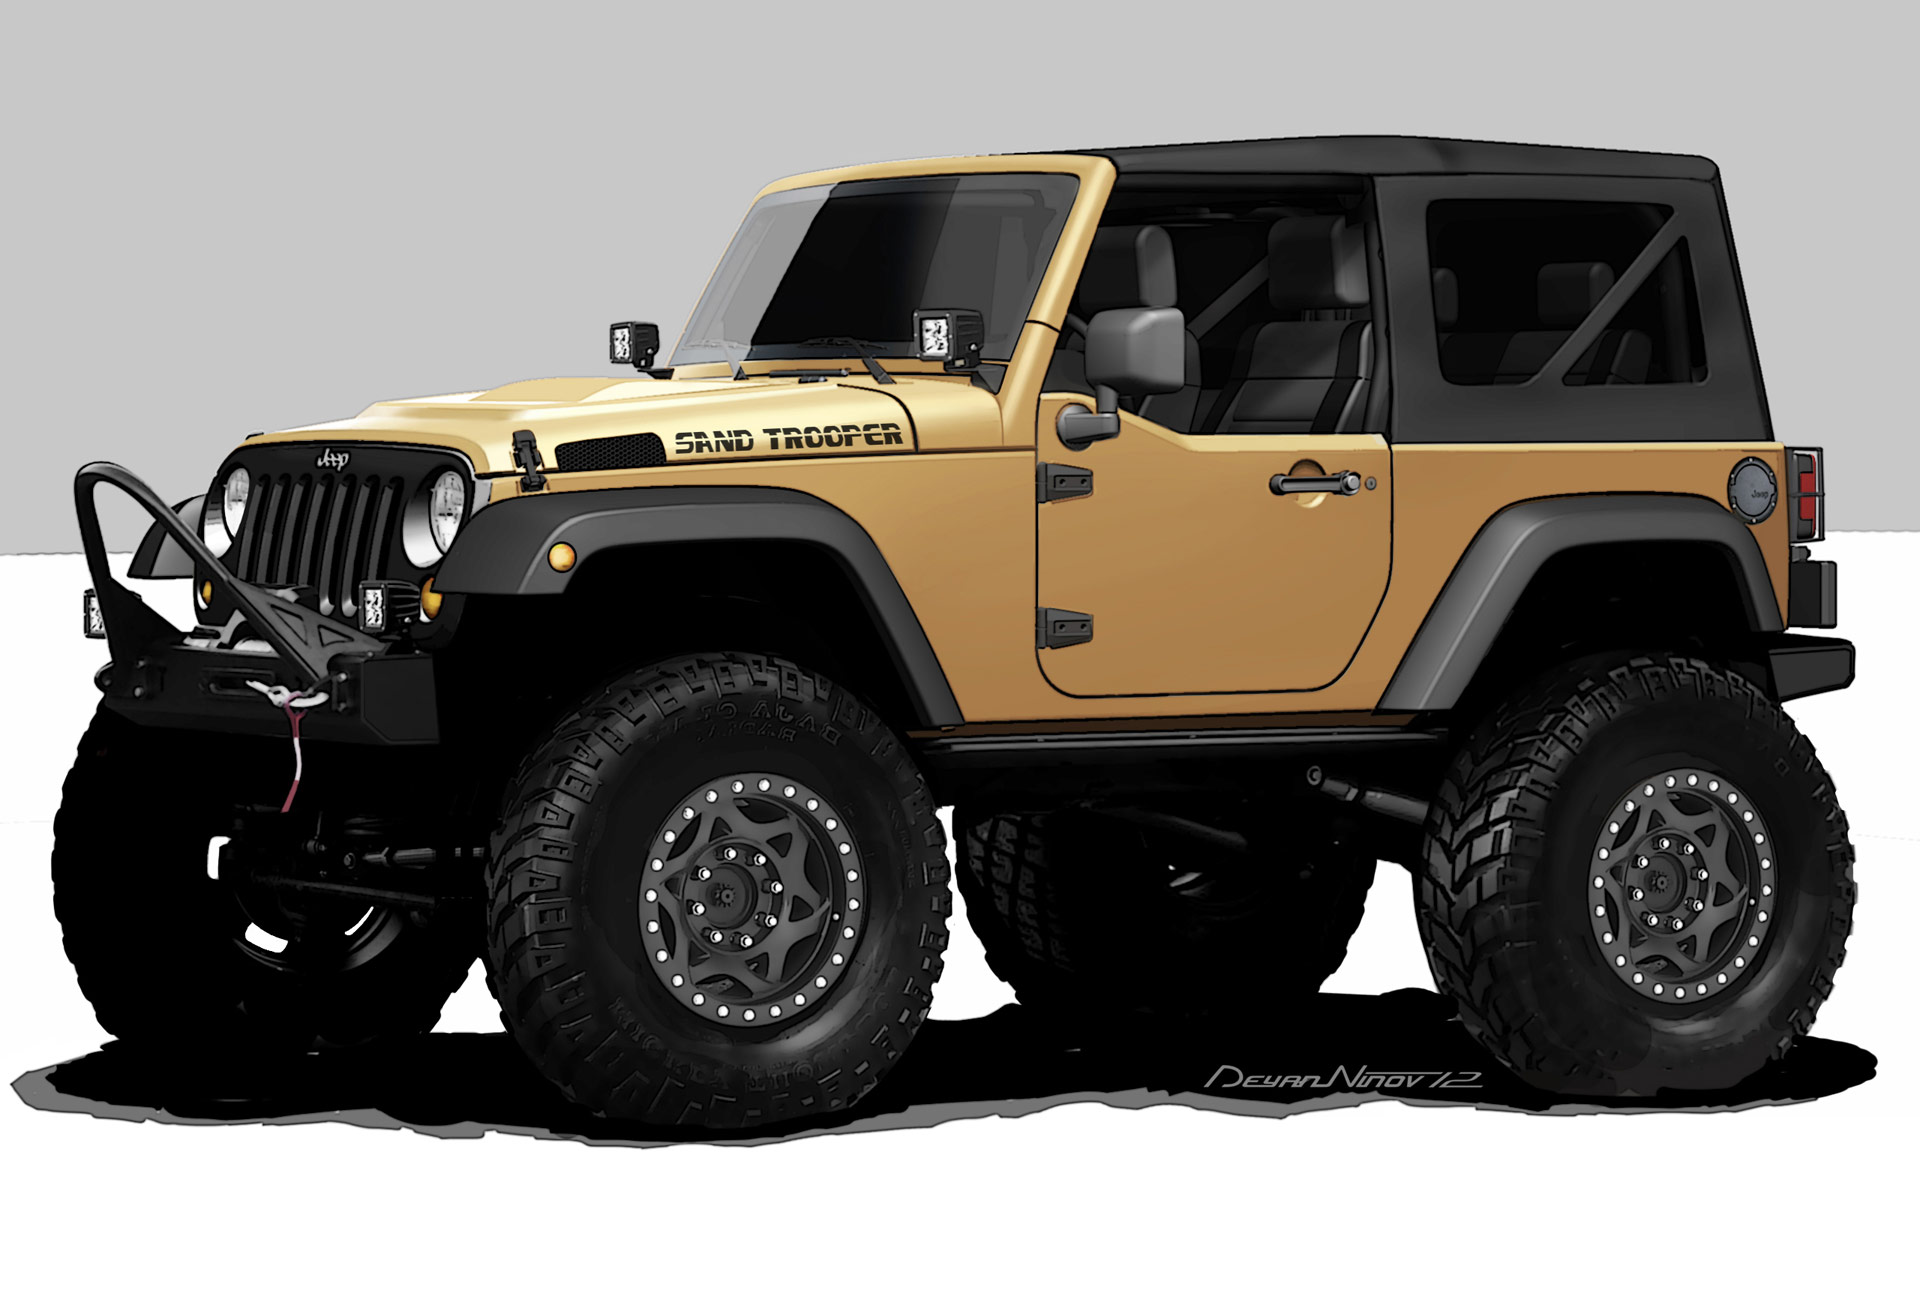 2012 jeep wrangler sand trooper. Black Bedroom Furniture Sets. Home Design Ideas